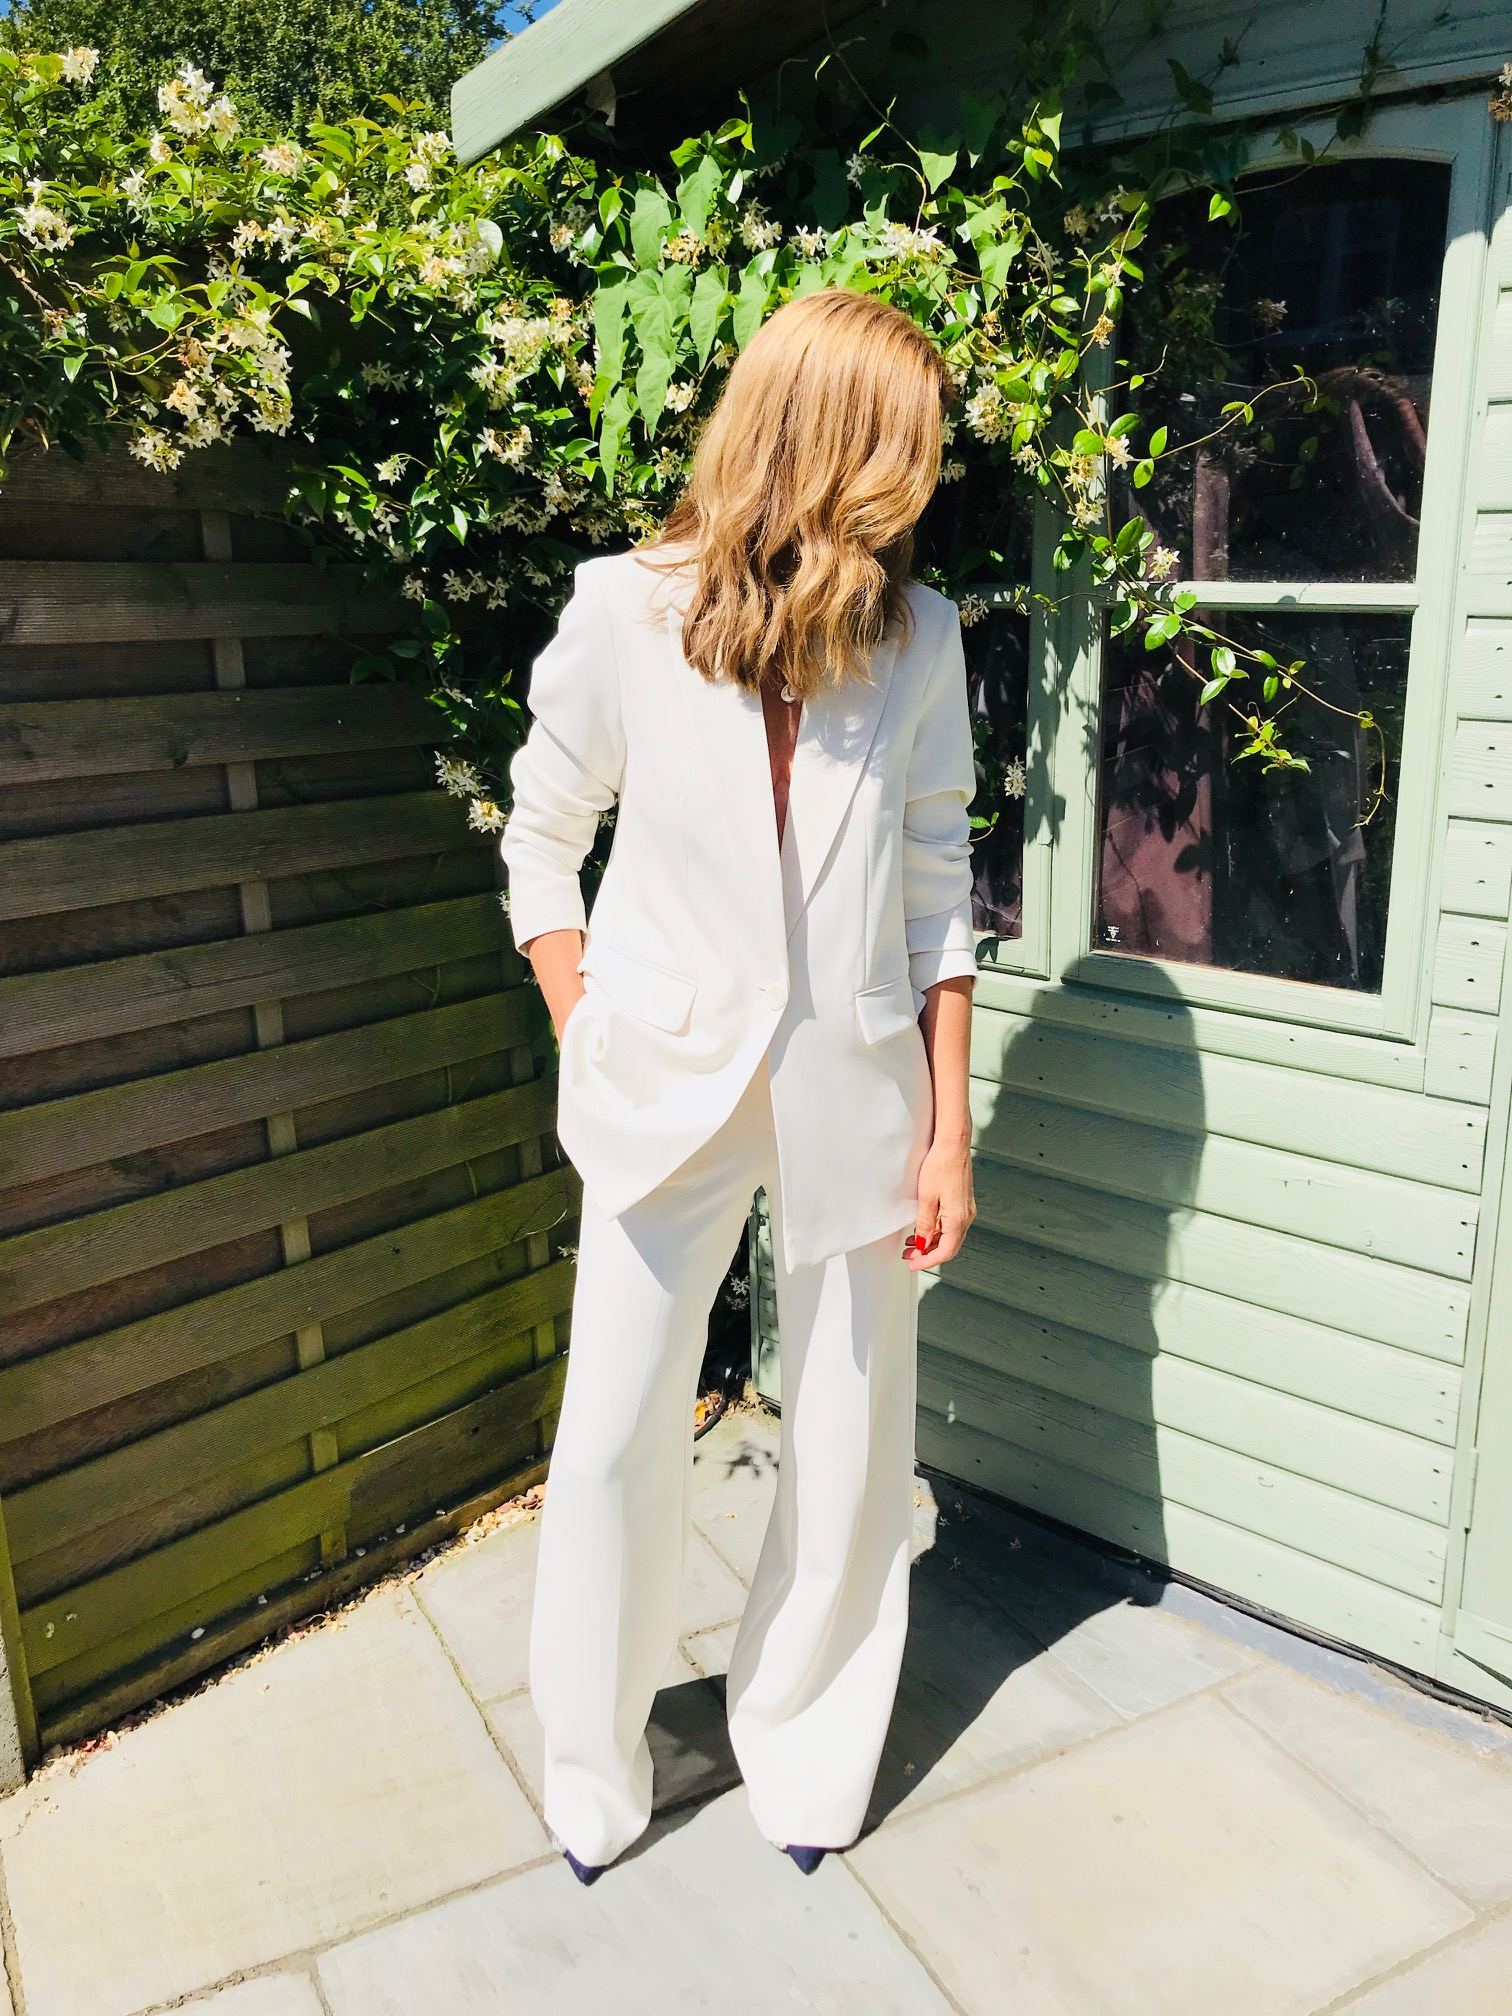 Suit - From Topshop Jacket £65Trousers £49So Impressed with this suitGreat priceTrue to size